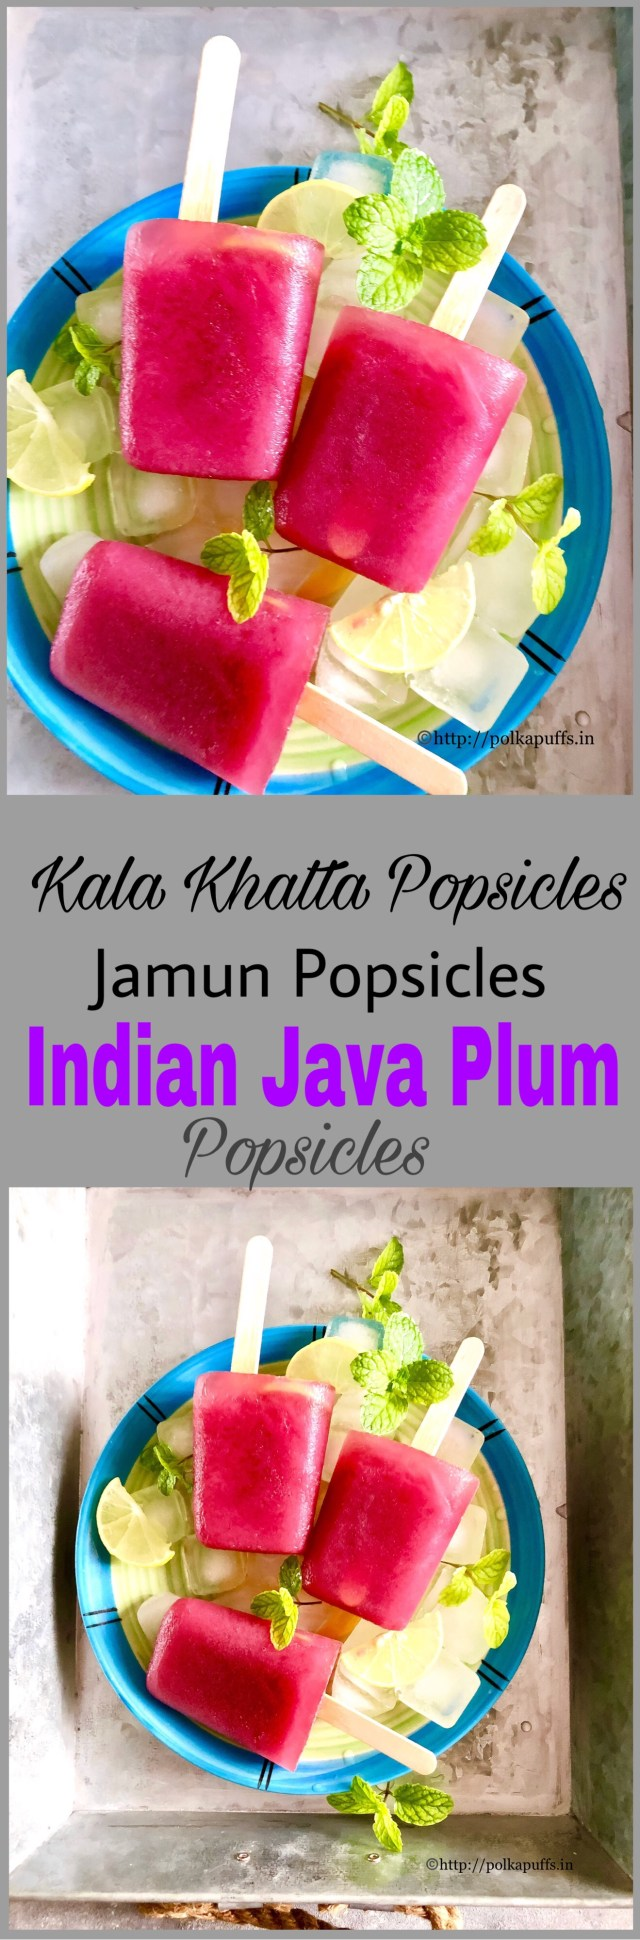 Kala Khatta Popsicles | Jamun Popsicles | Indian Java Plum Popsicles